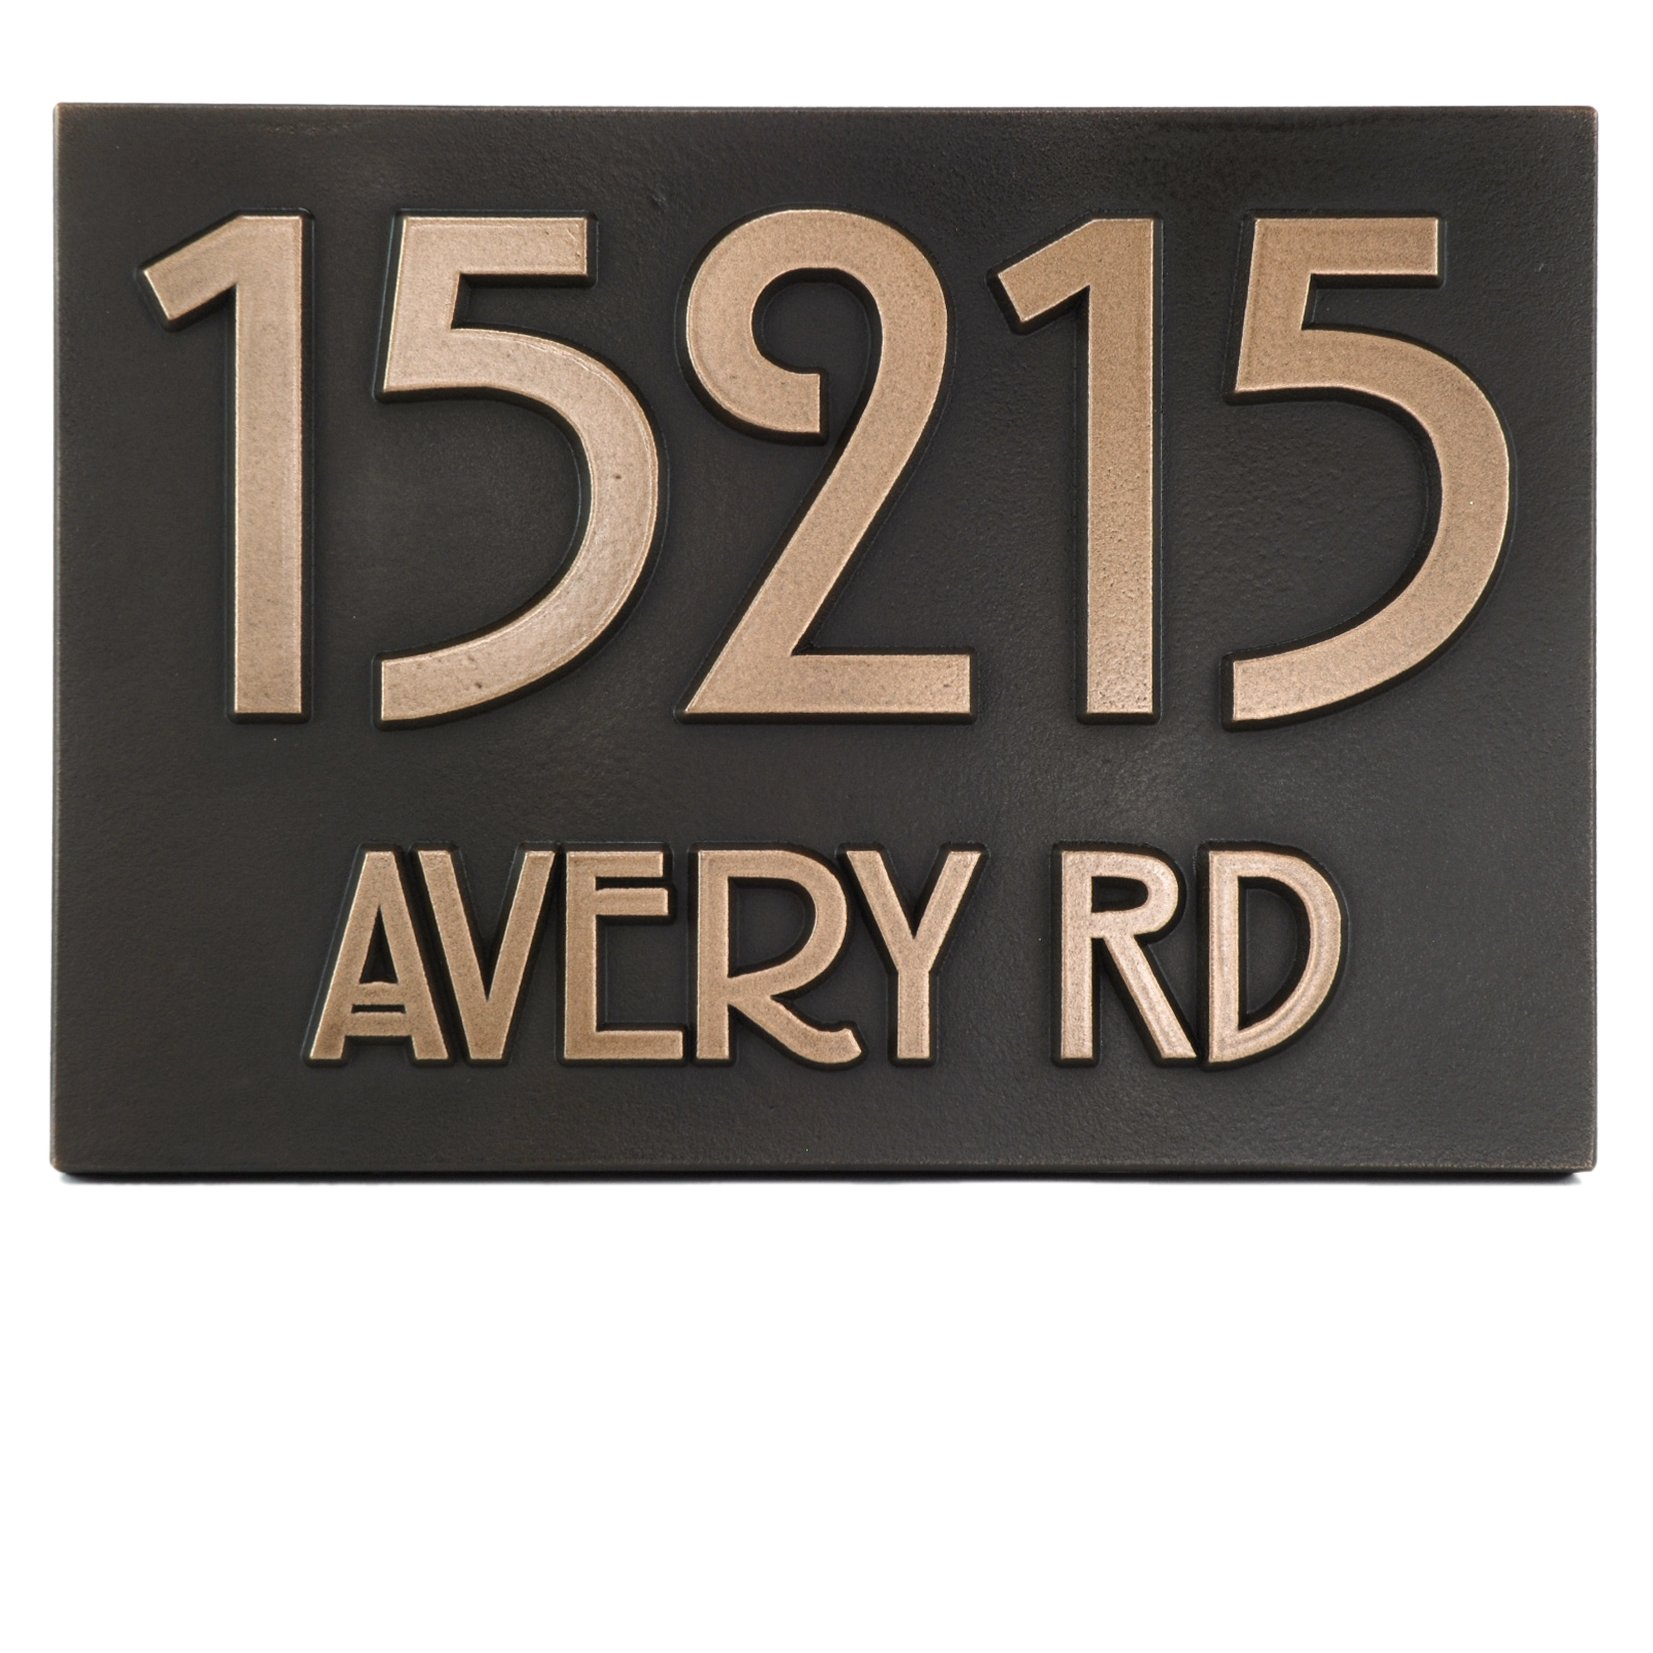 Modern Stickley Address Plaque No Border 12.5x8.75 - Raised Bronze Coated by Atlas Signs and Plaques